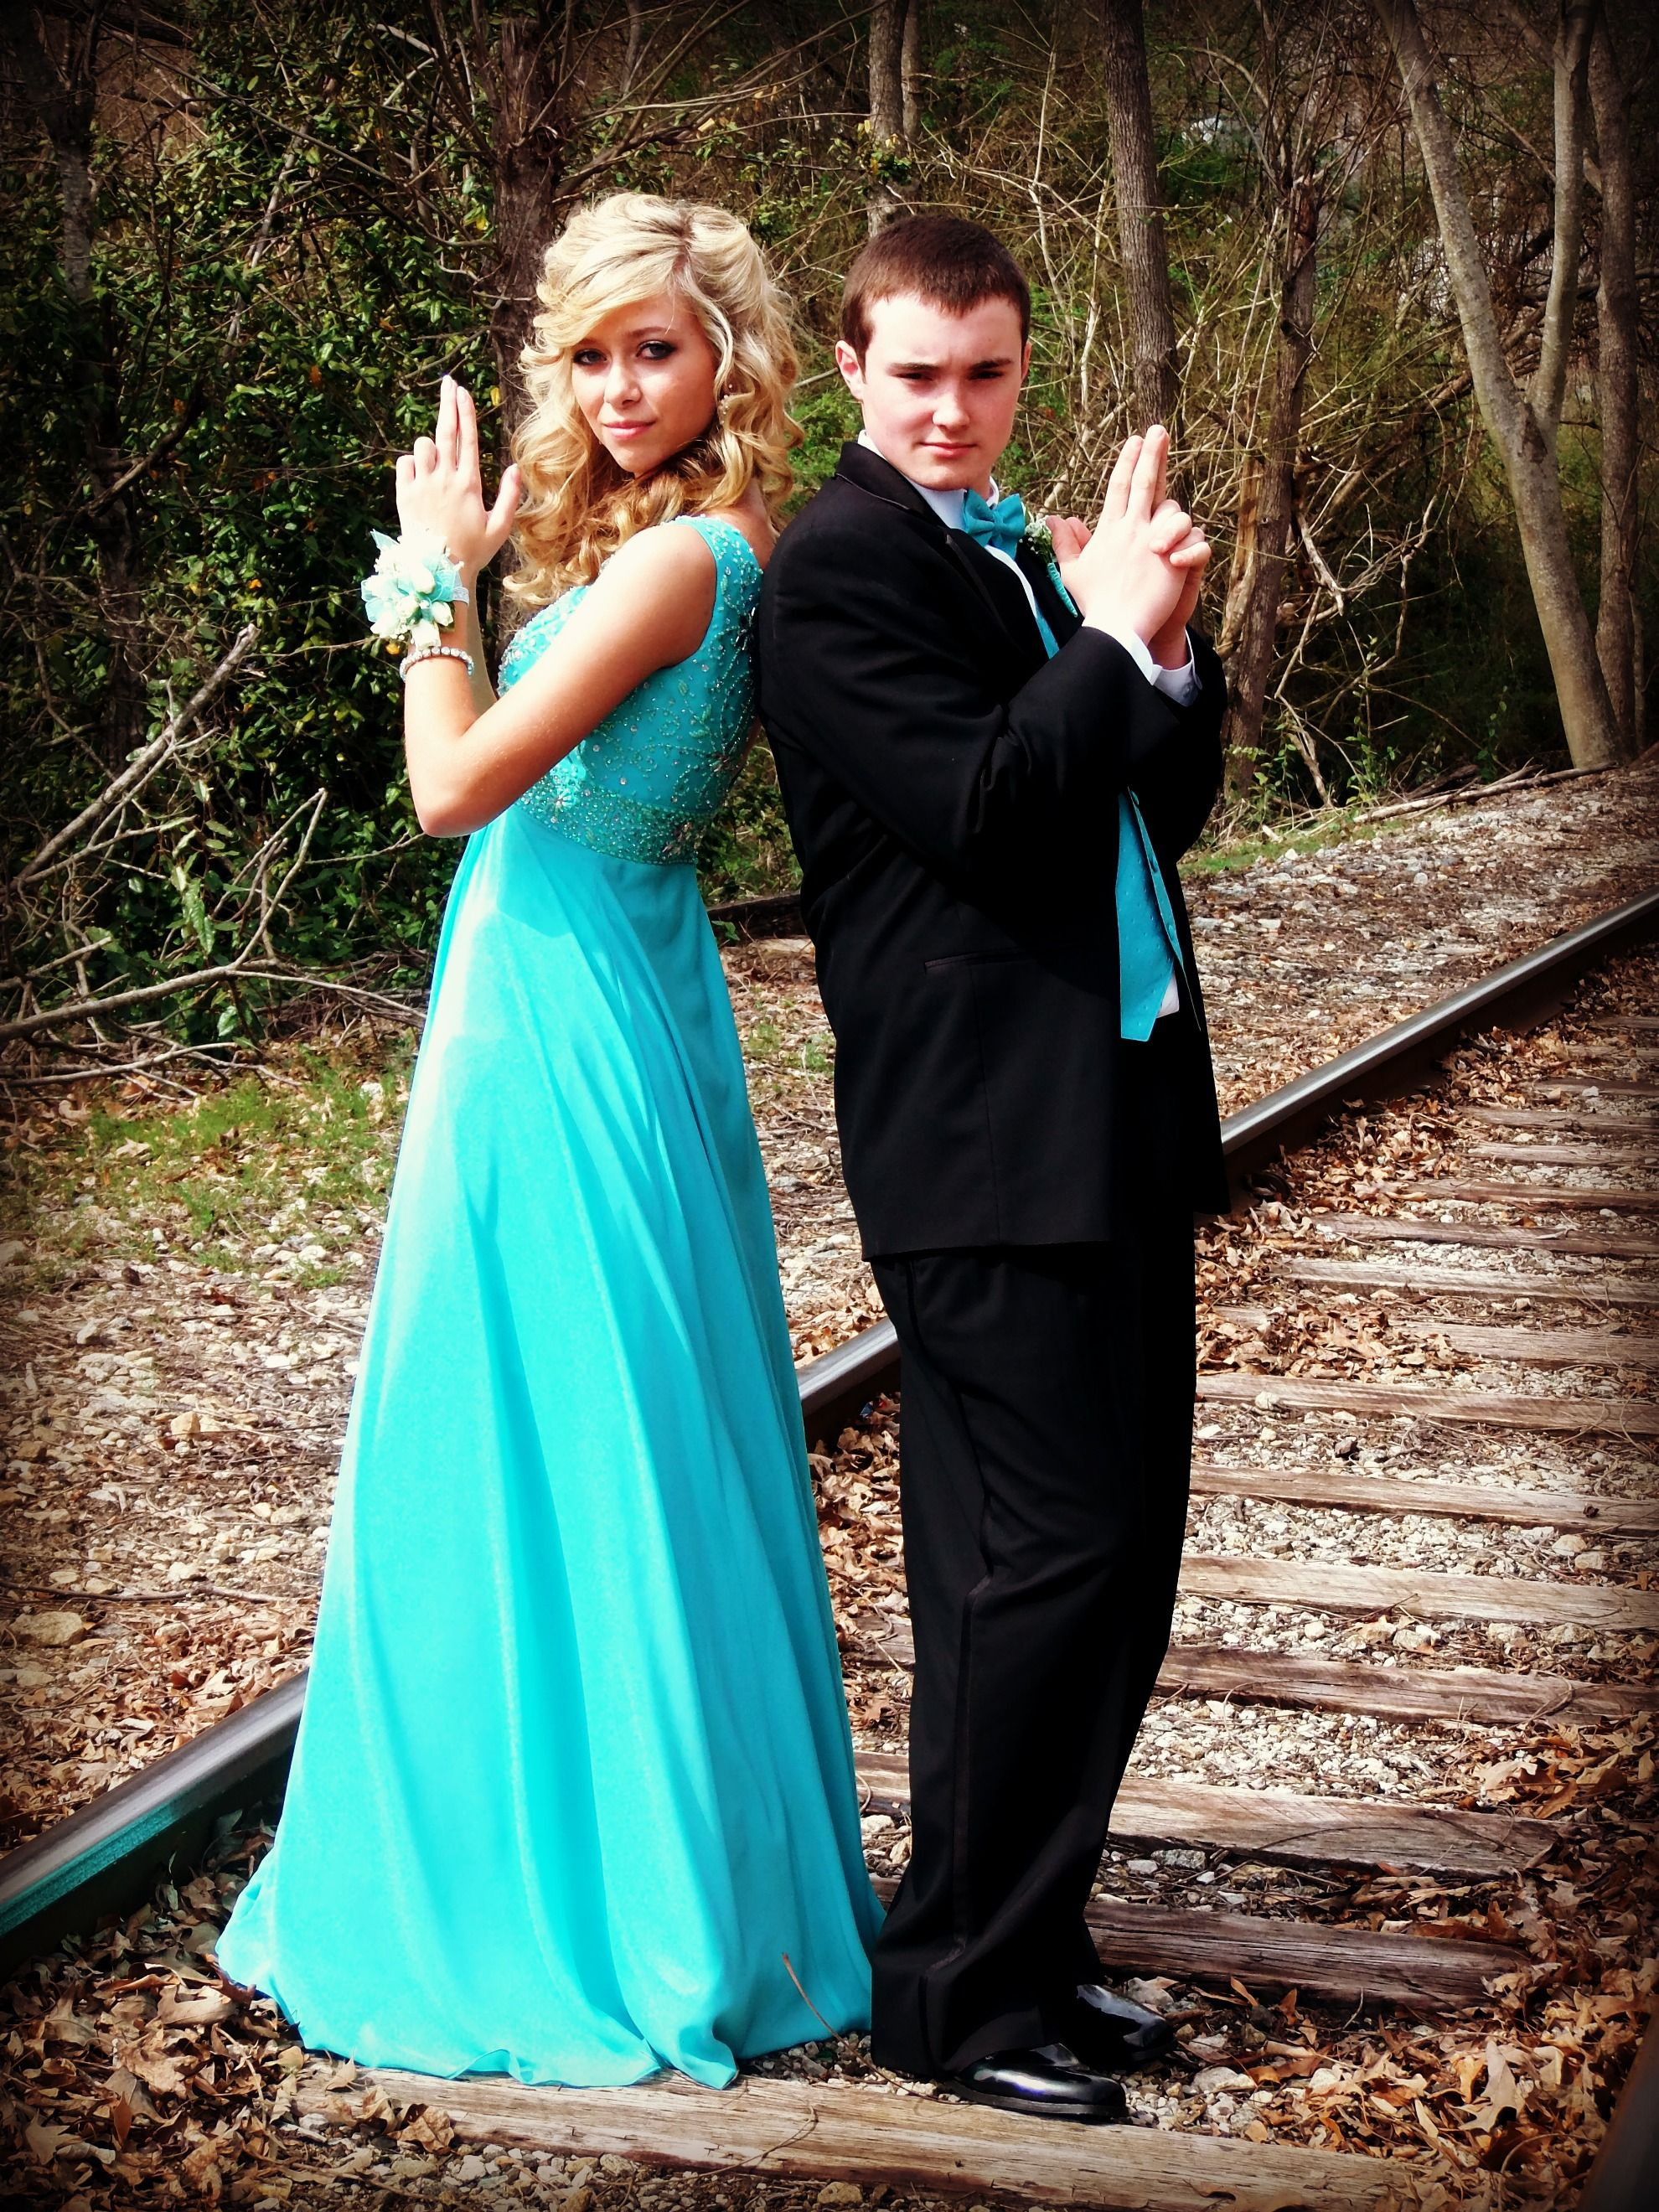 cute prom poses prom pictures